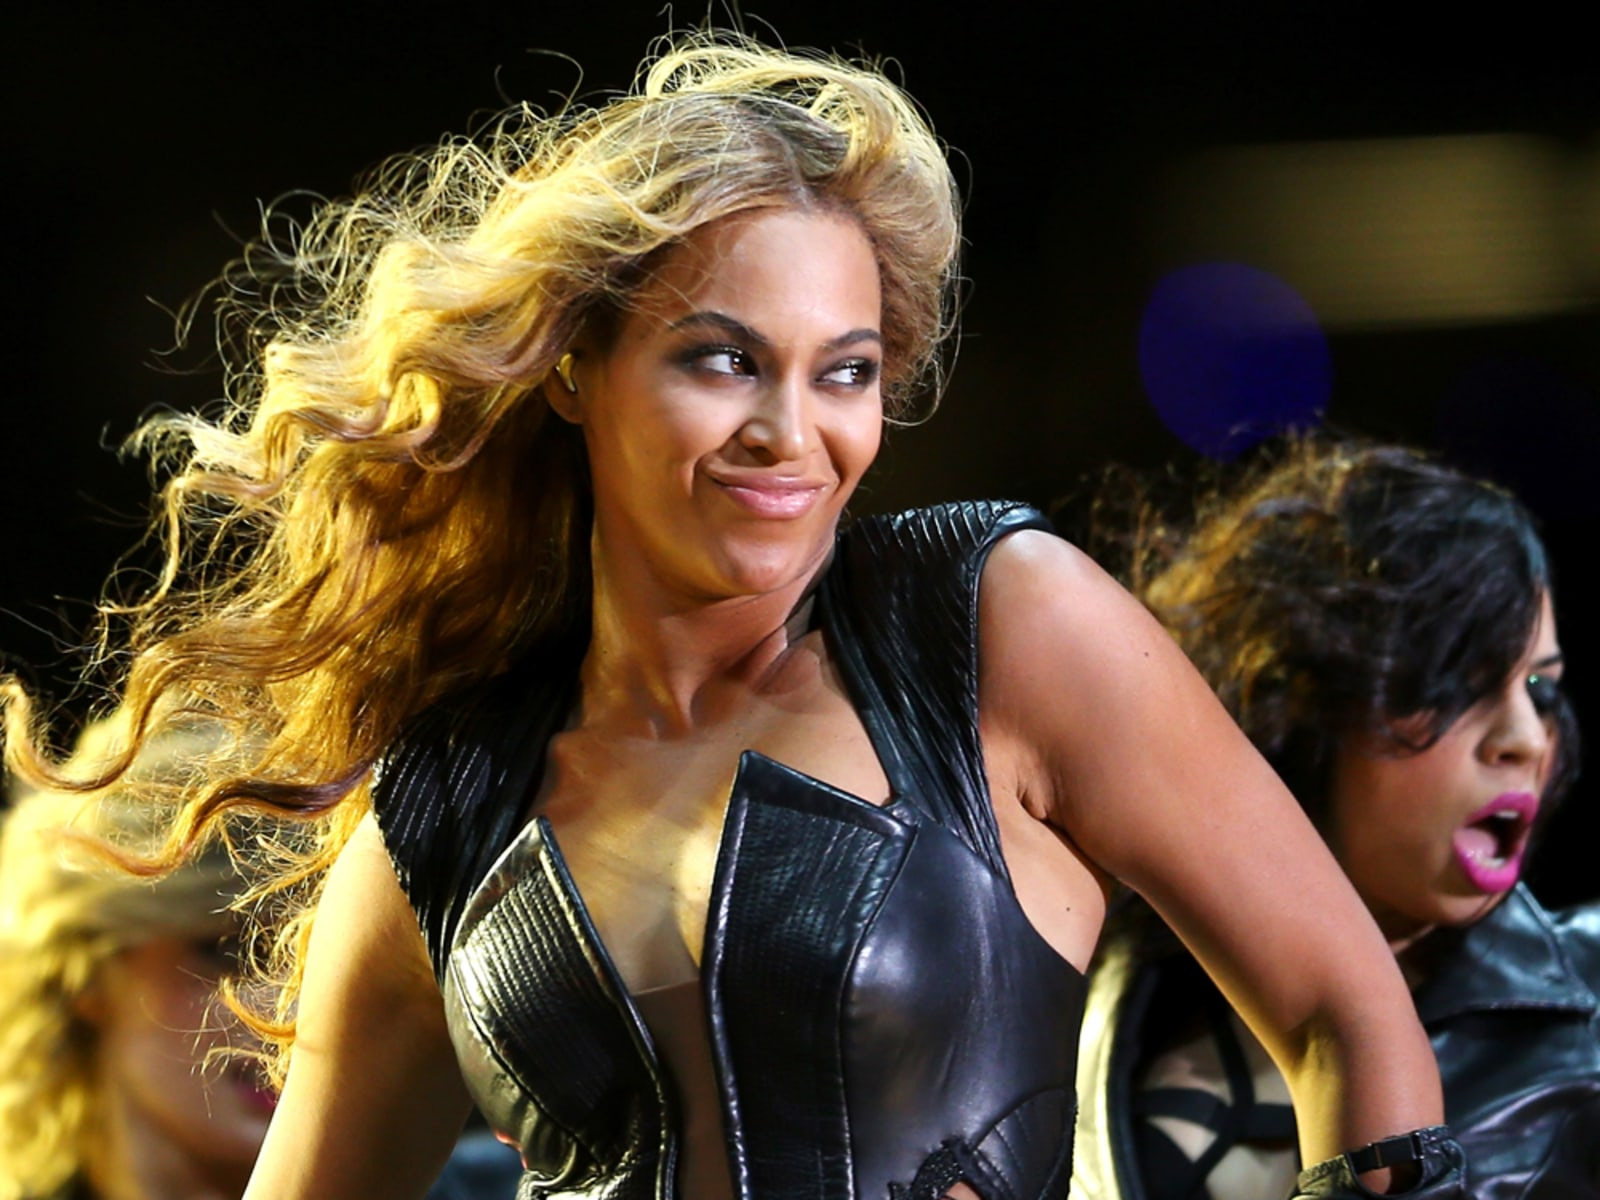 Image: Beyonce performs during the Pepsi Super Bowl XLVII Halftime Show.